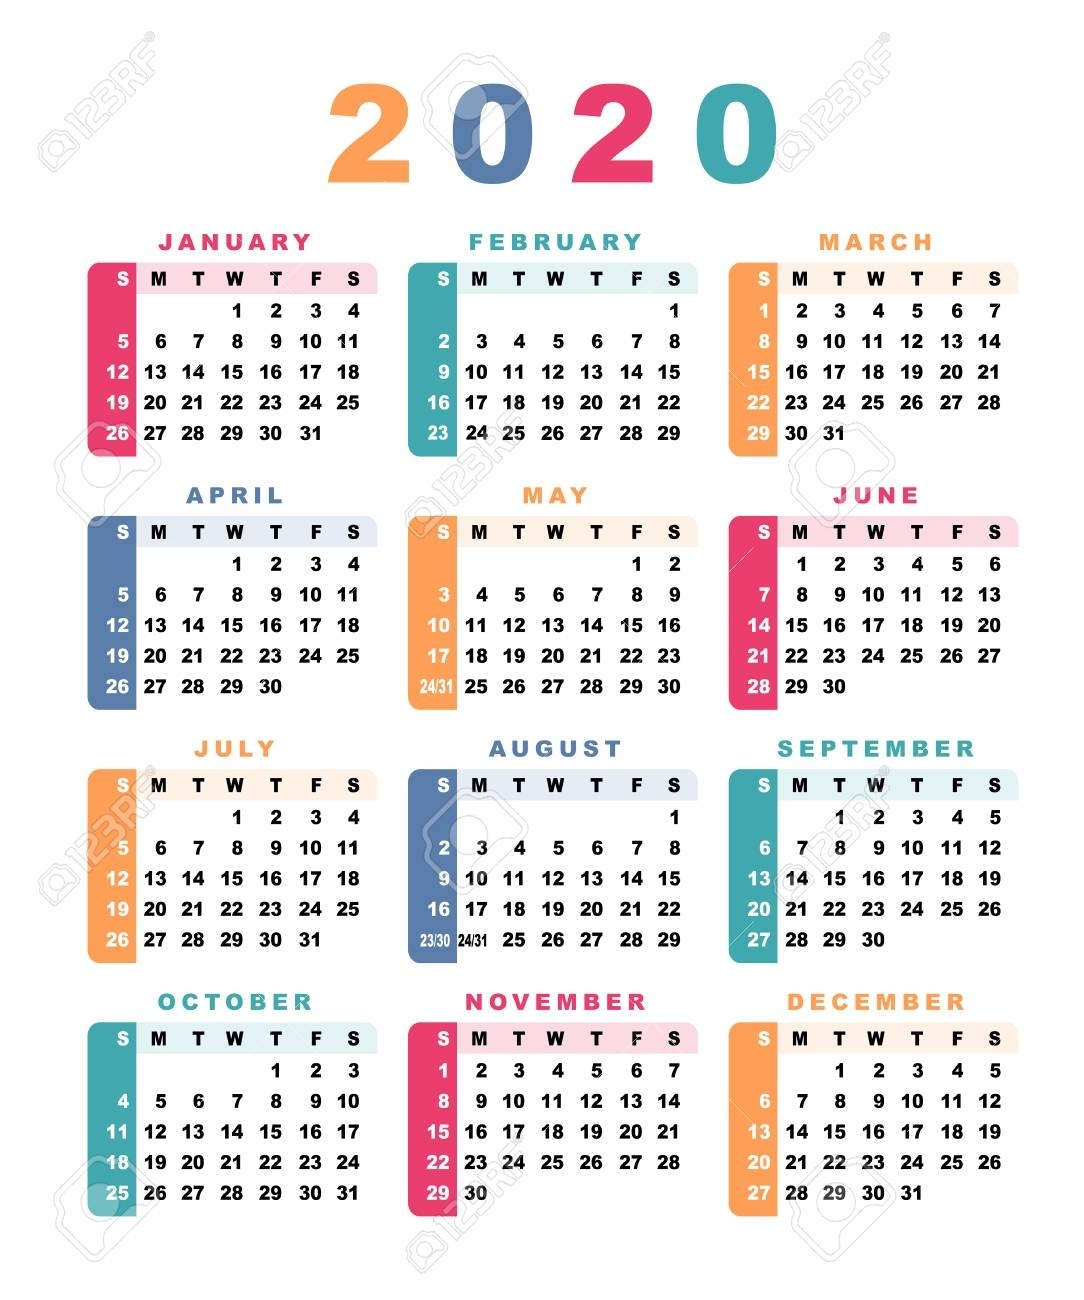 Calendar 2020 (Week Starts With Sunday). Vector Illustration.